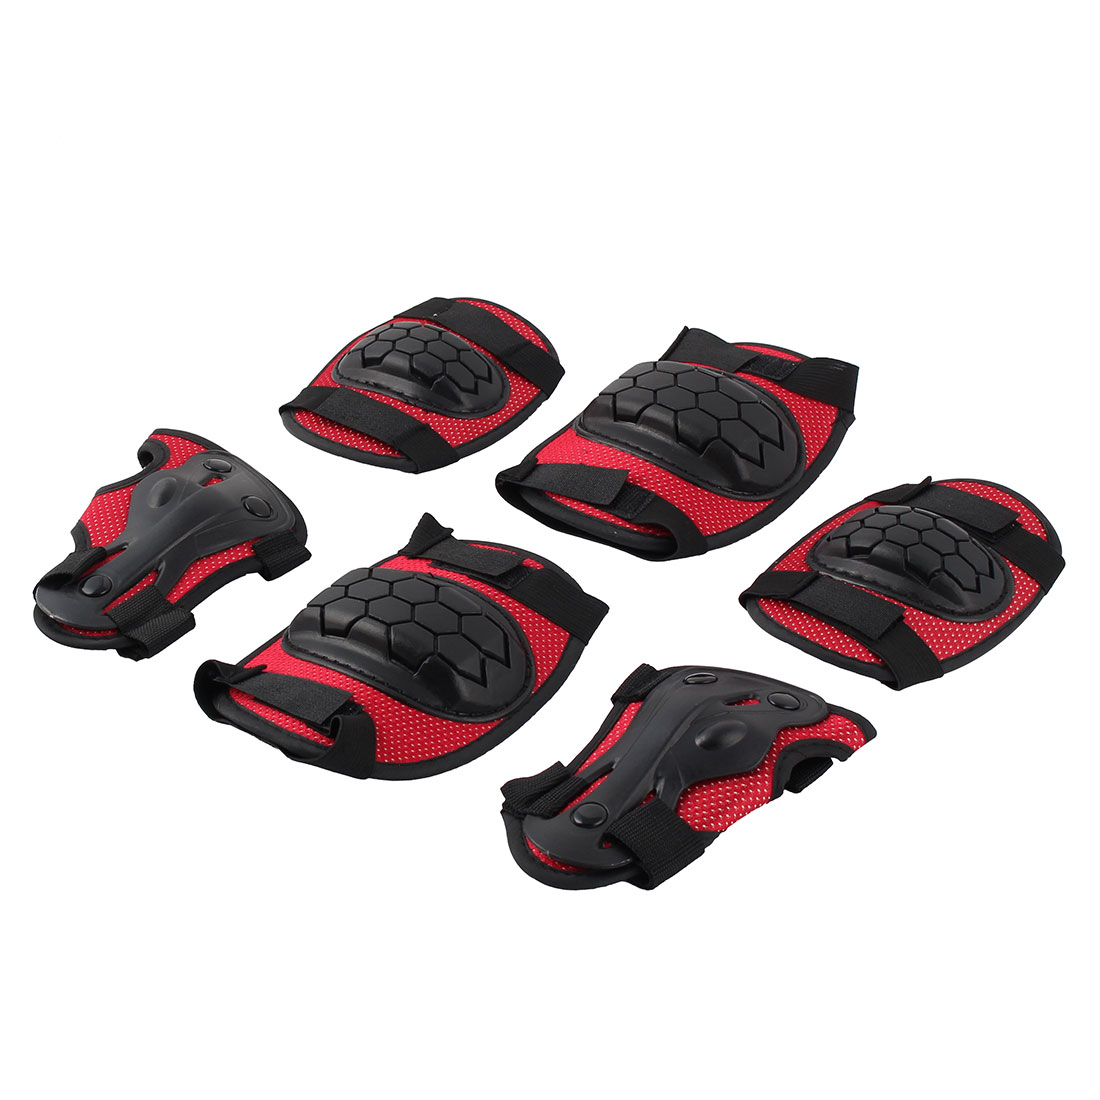 Outside Sports Gear Safety Pad Safeguard Knee Elbow Plam Brace Protector Black Red 6 in 1